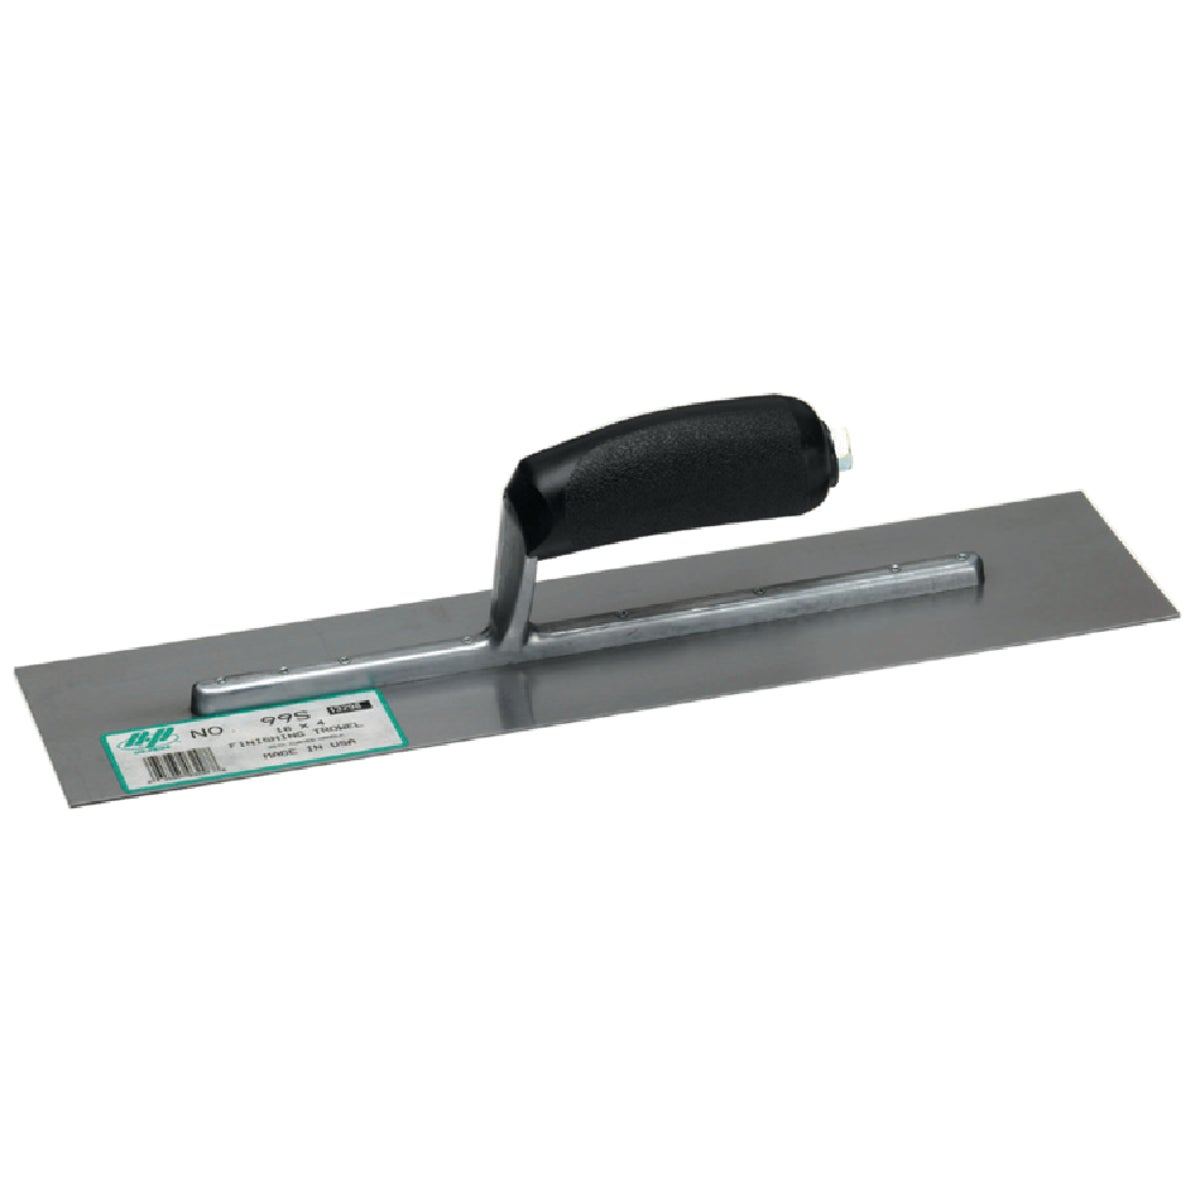 "16"" FINISHING TROWEL - 18344 by Marshalltown Trowel"